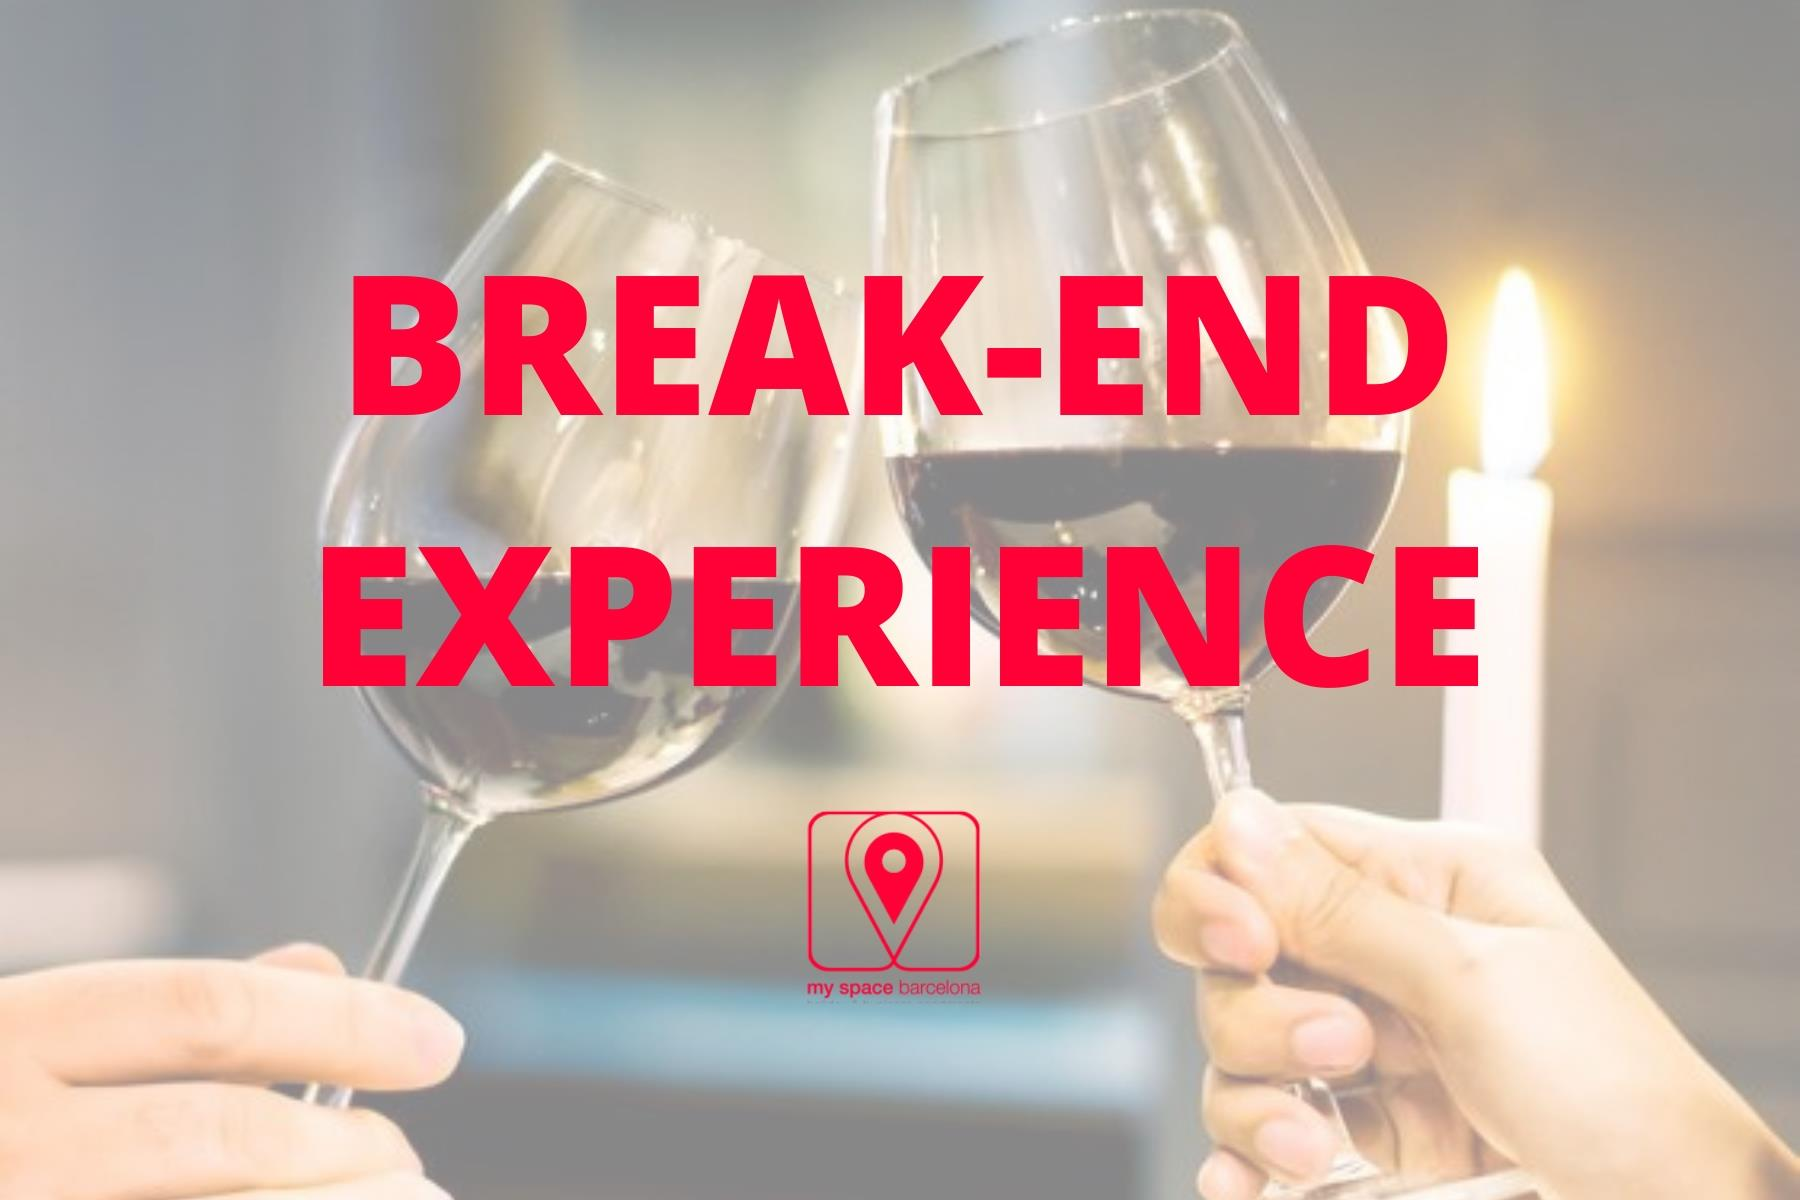 BREAK-END EXPERIENCE: DISCONNECT WITHOUT LEAVING BARCELONA